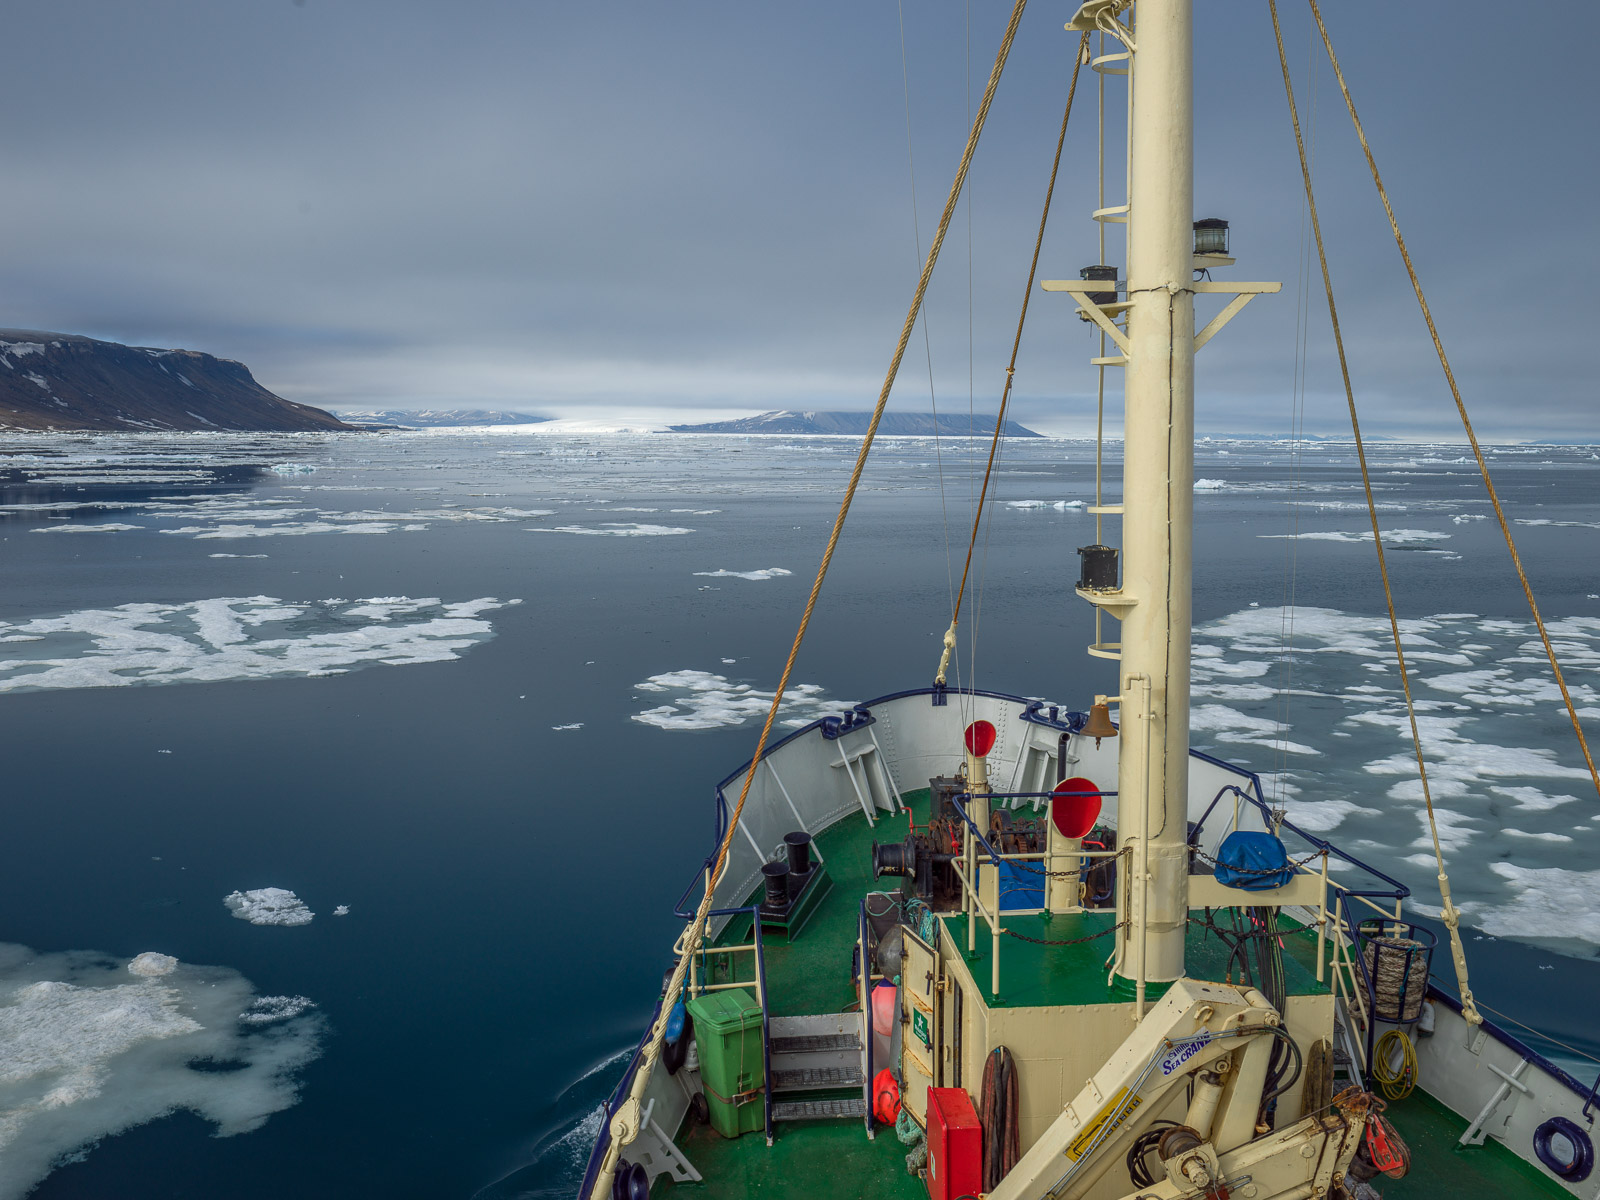 photo-workshop-svalbard-photo-expedition-16.jpg